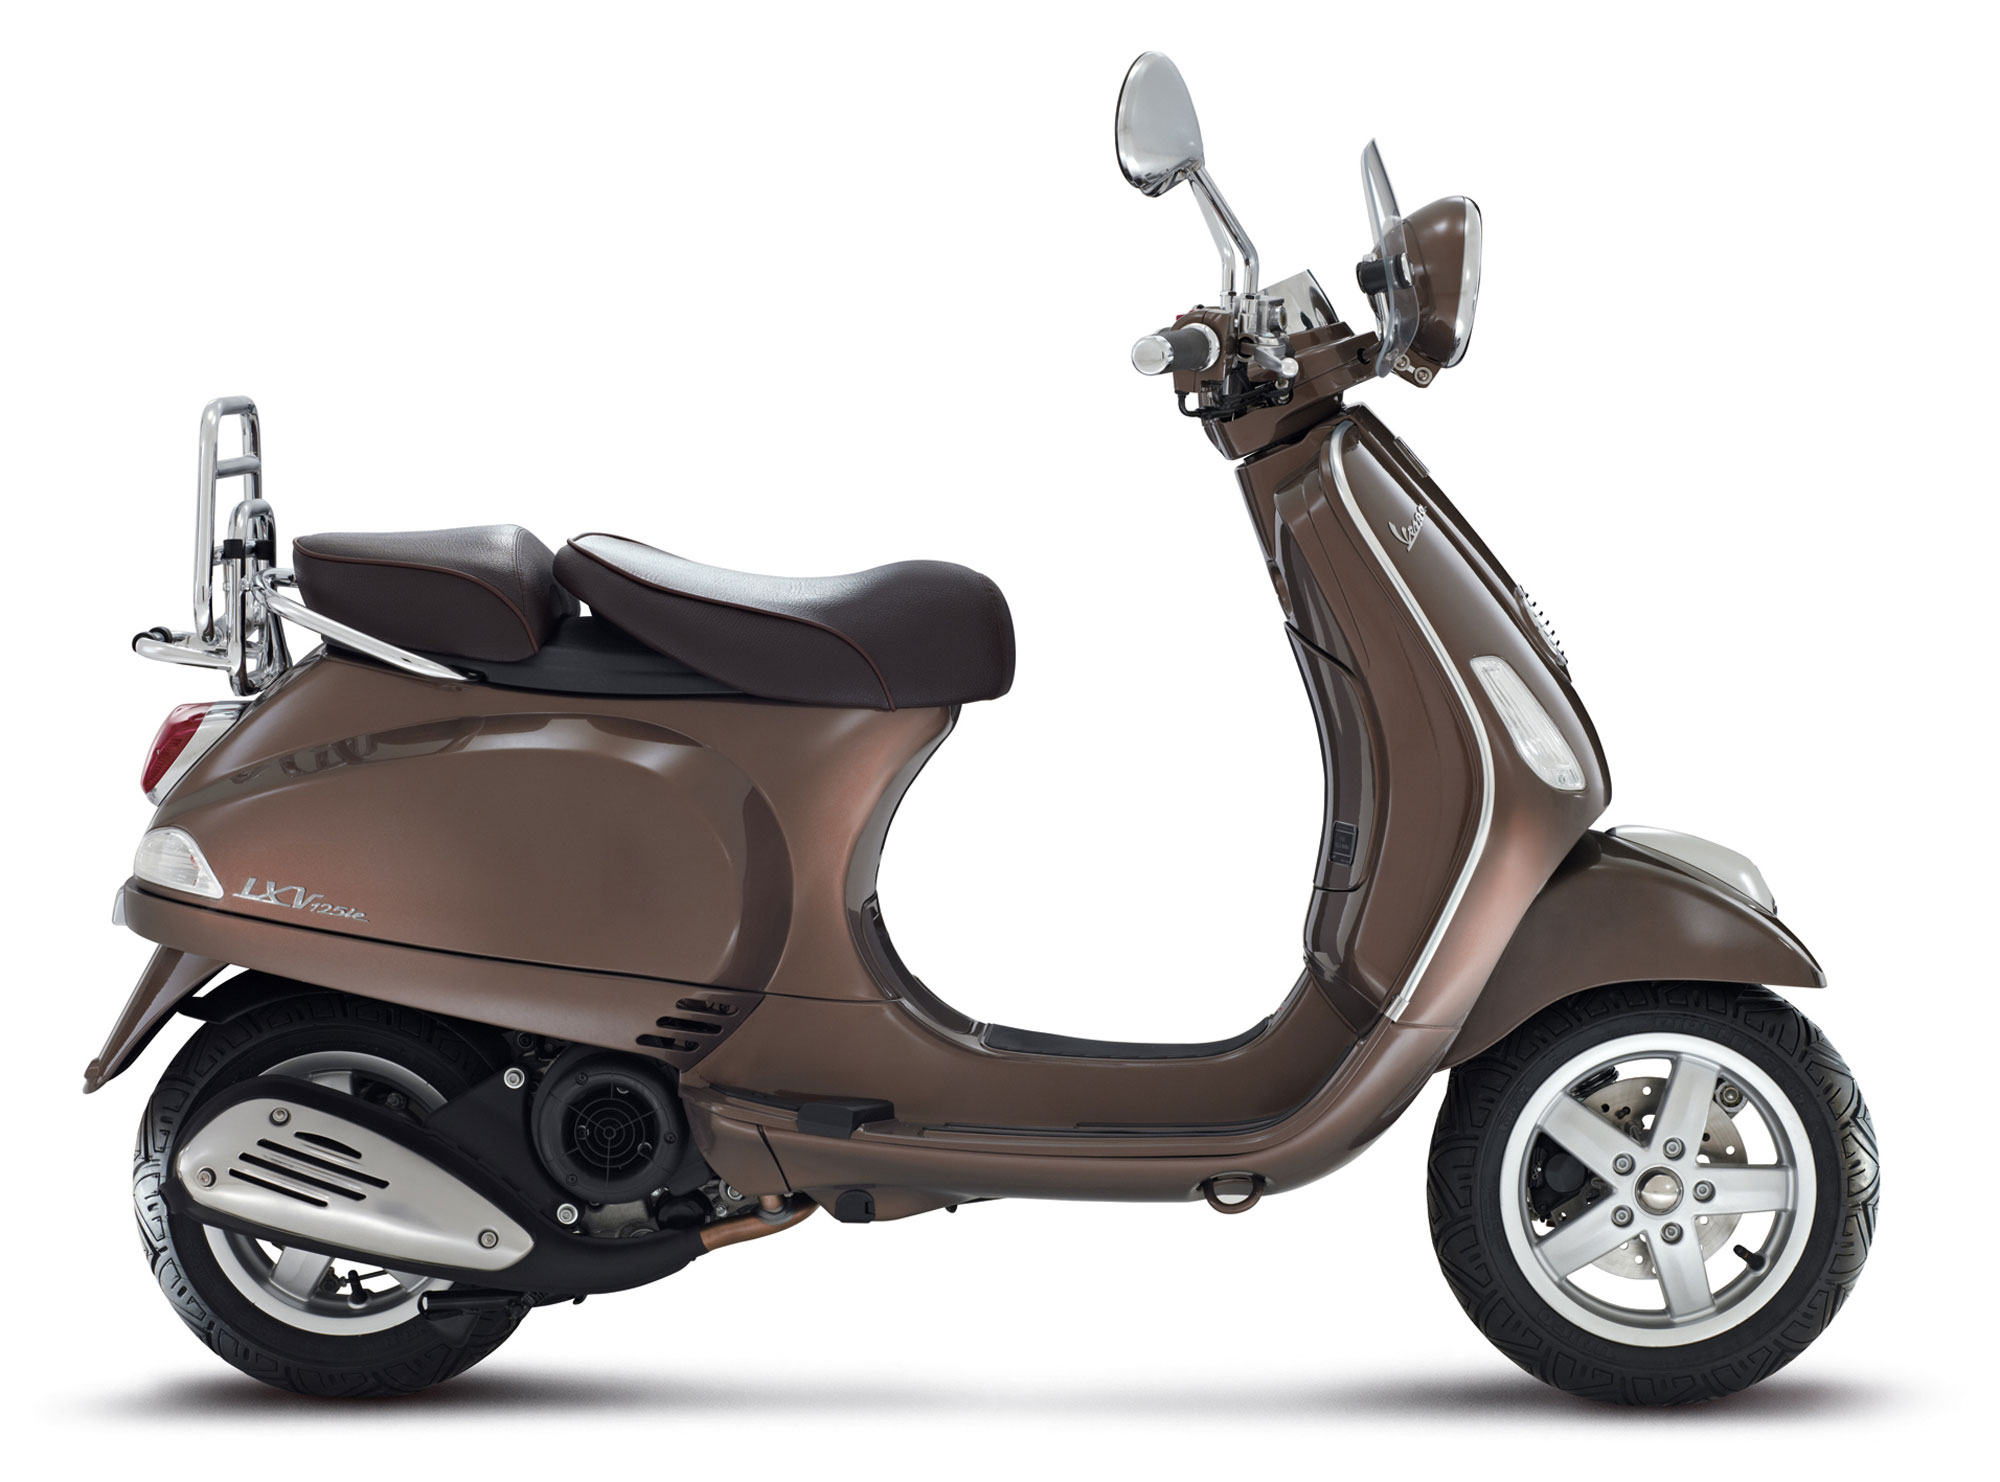 Moto vespa 150 photo - 6